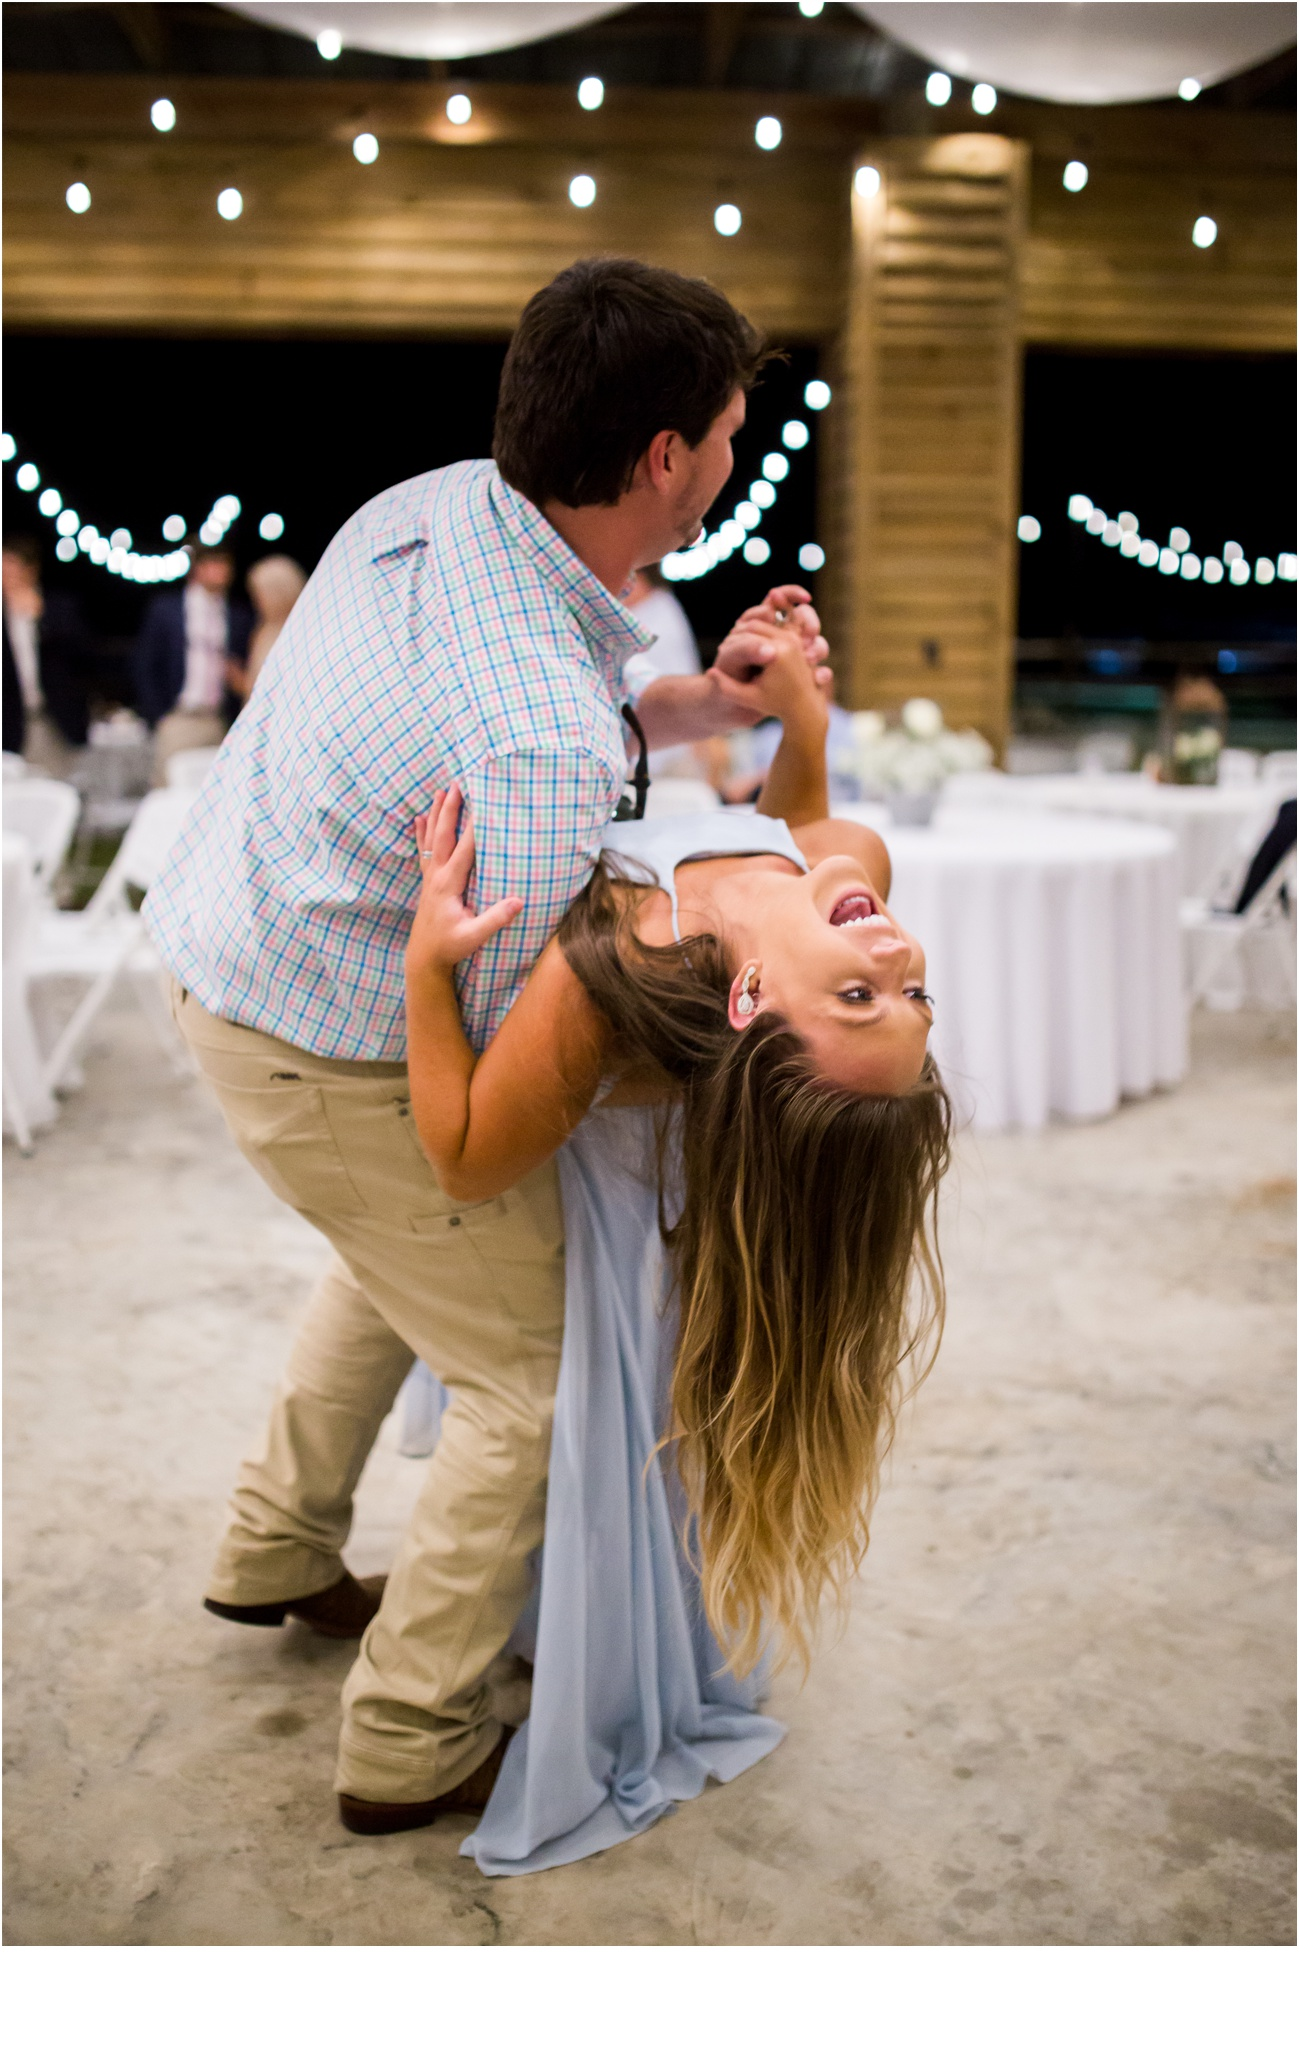 Rainey_Gregg_Photography_St._Simons_Island_Georgia_California_Wedding_Portrait_Photography_0996.jpg